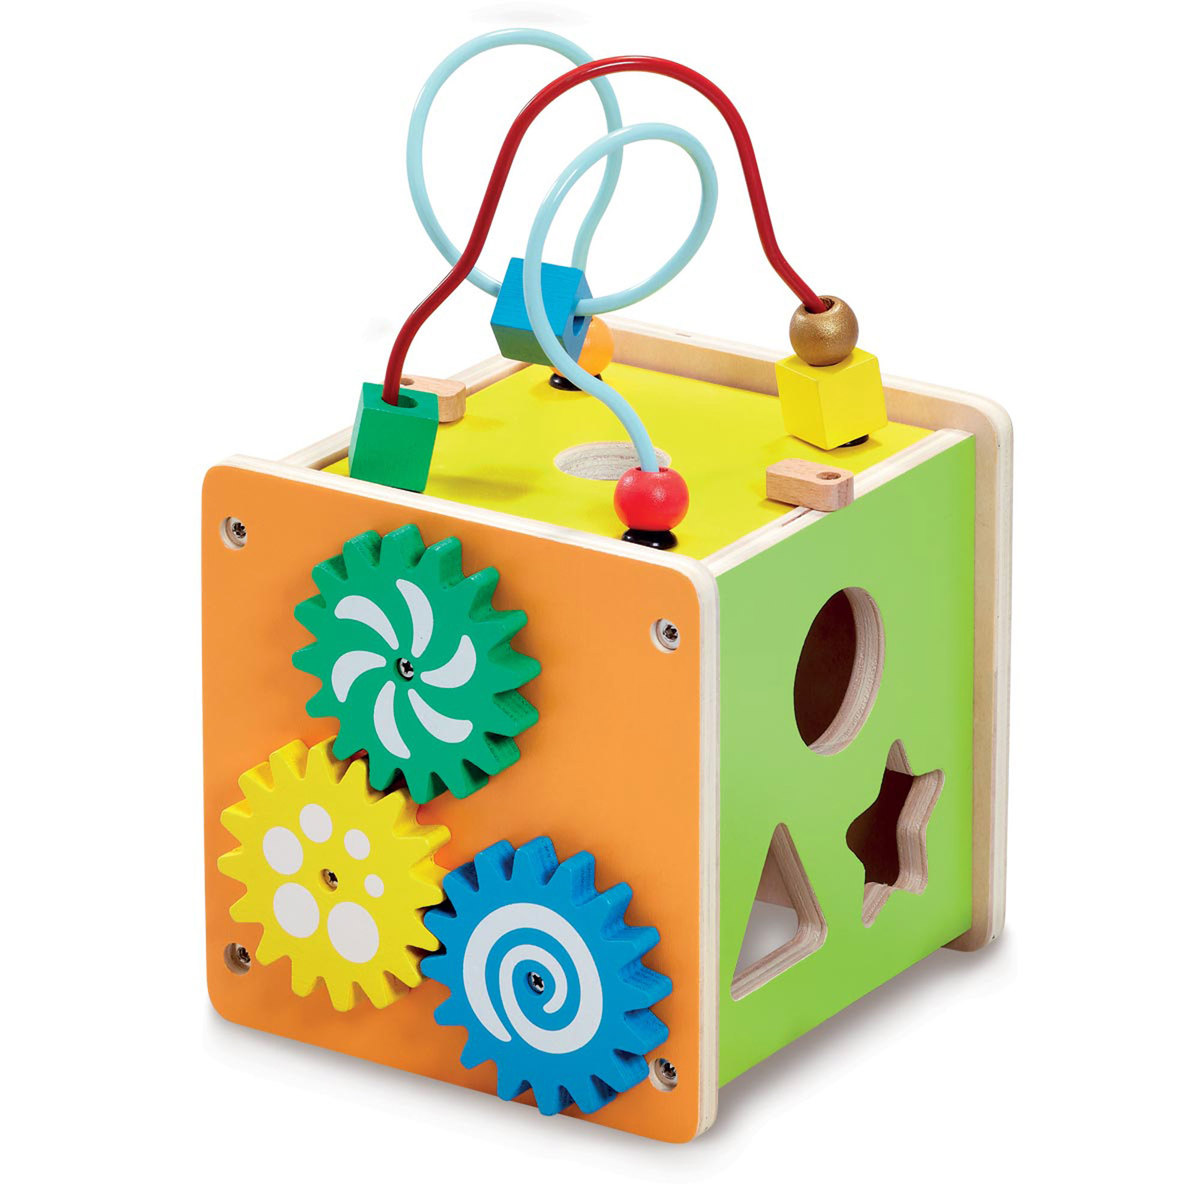 Early Learning Centre Classic Wooden Mini Activity Cube from Early Learning Center